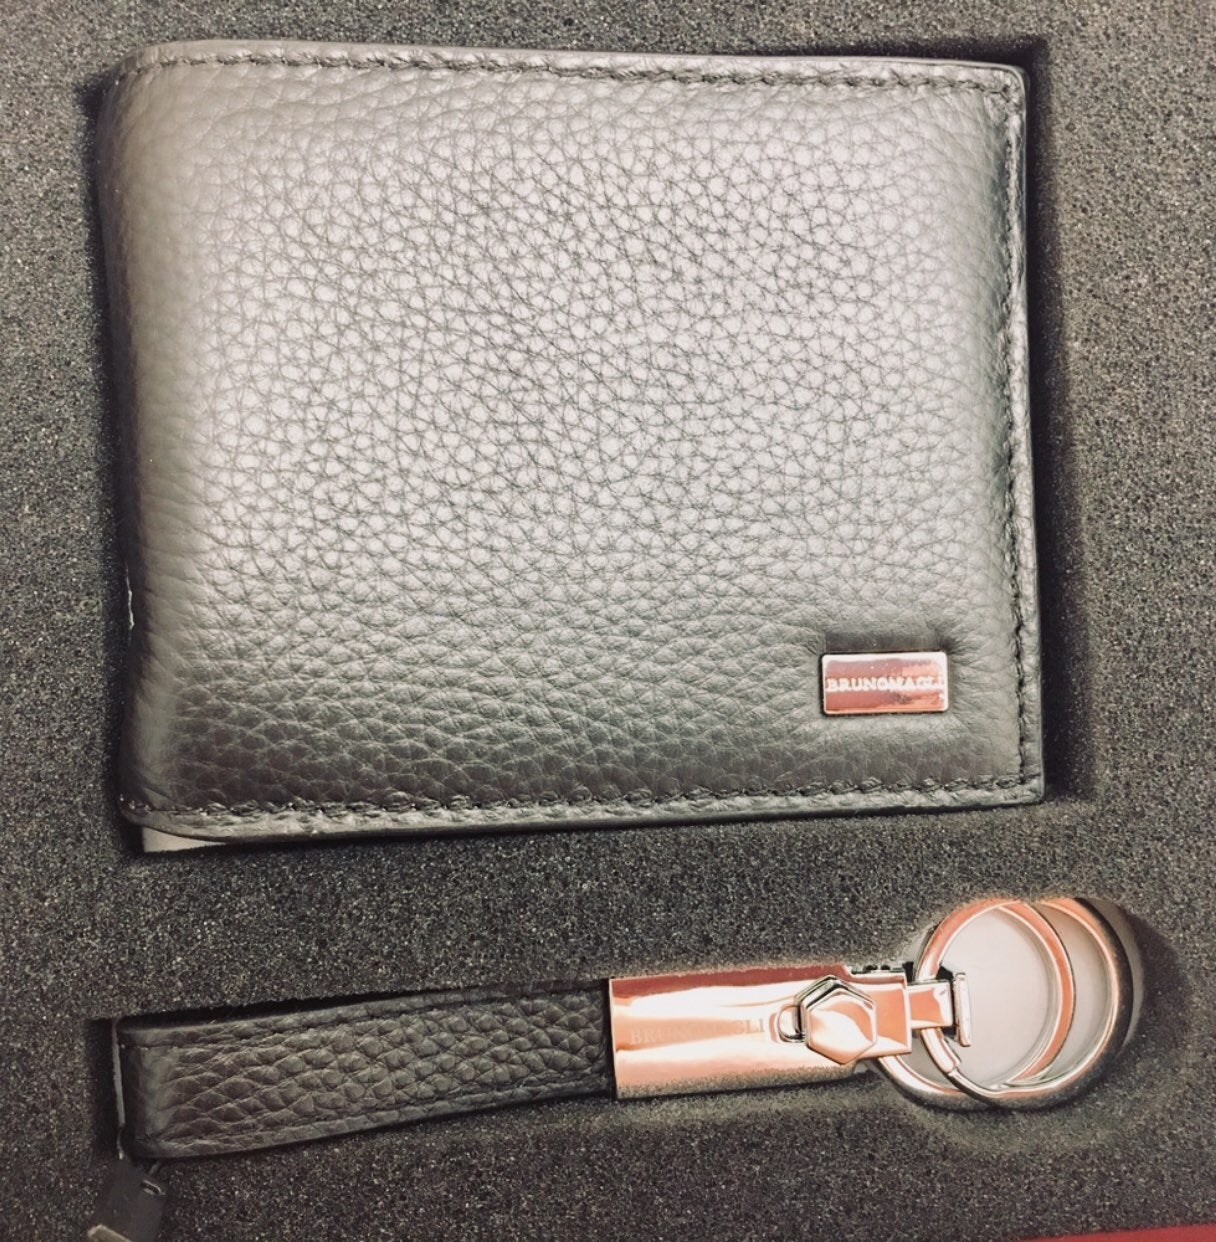 Bruno magli wallet set. Retail $149. 3 N